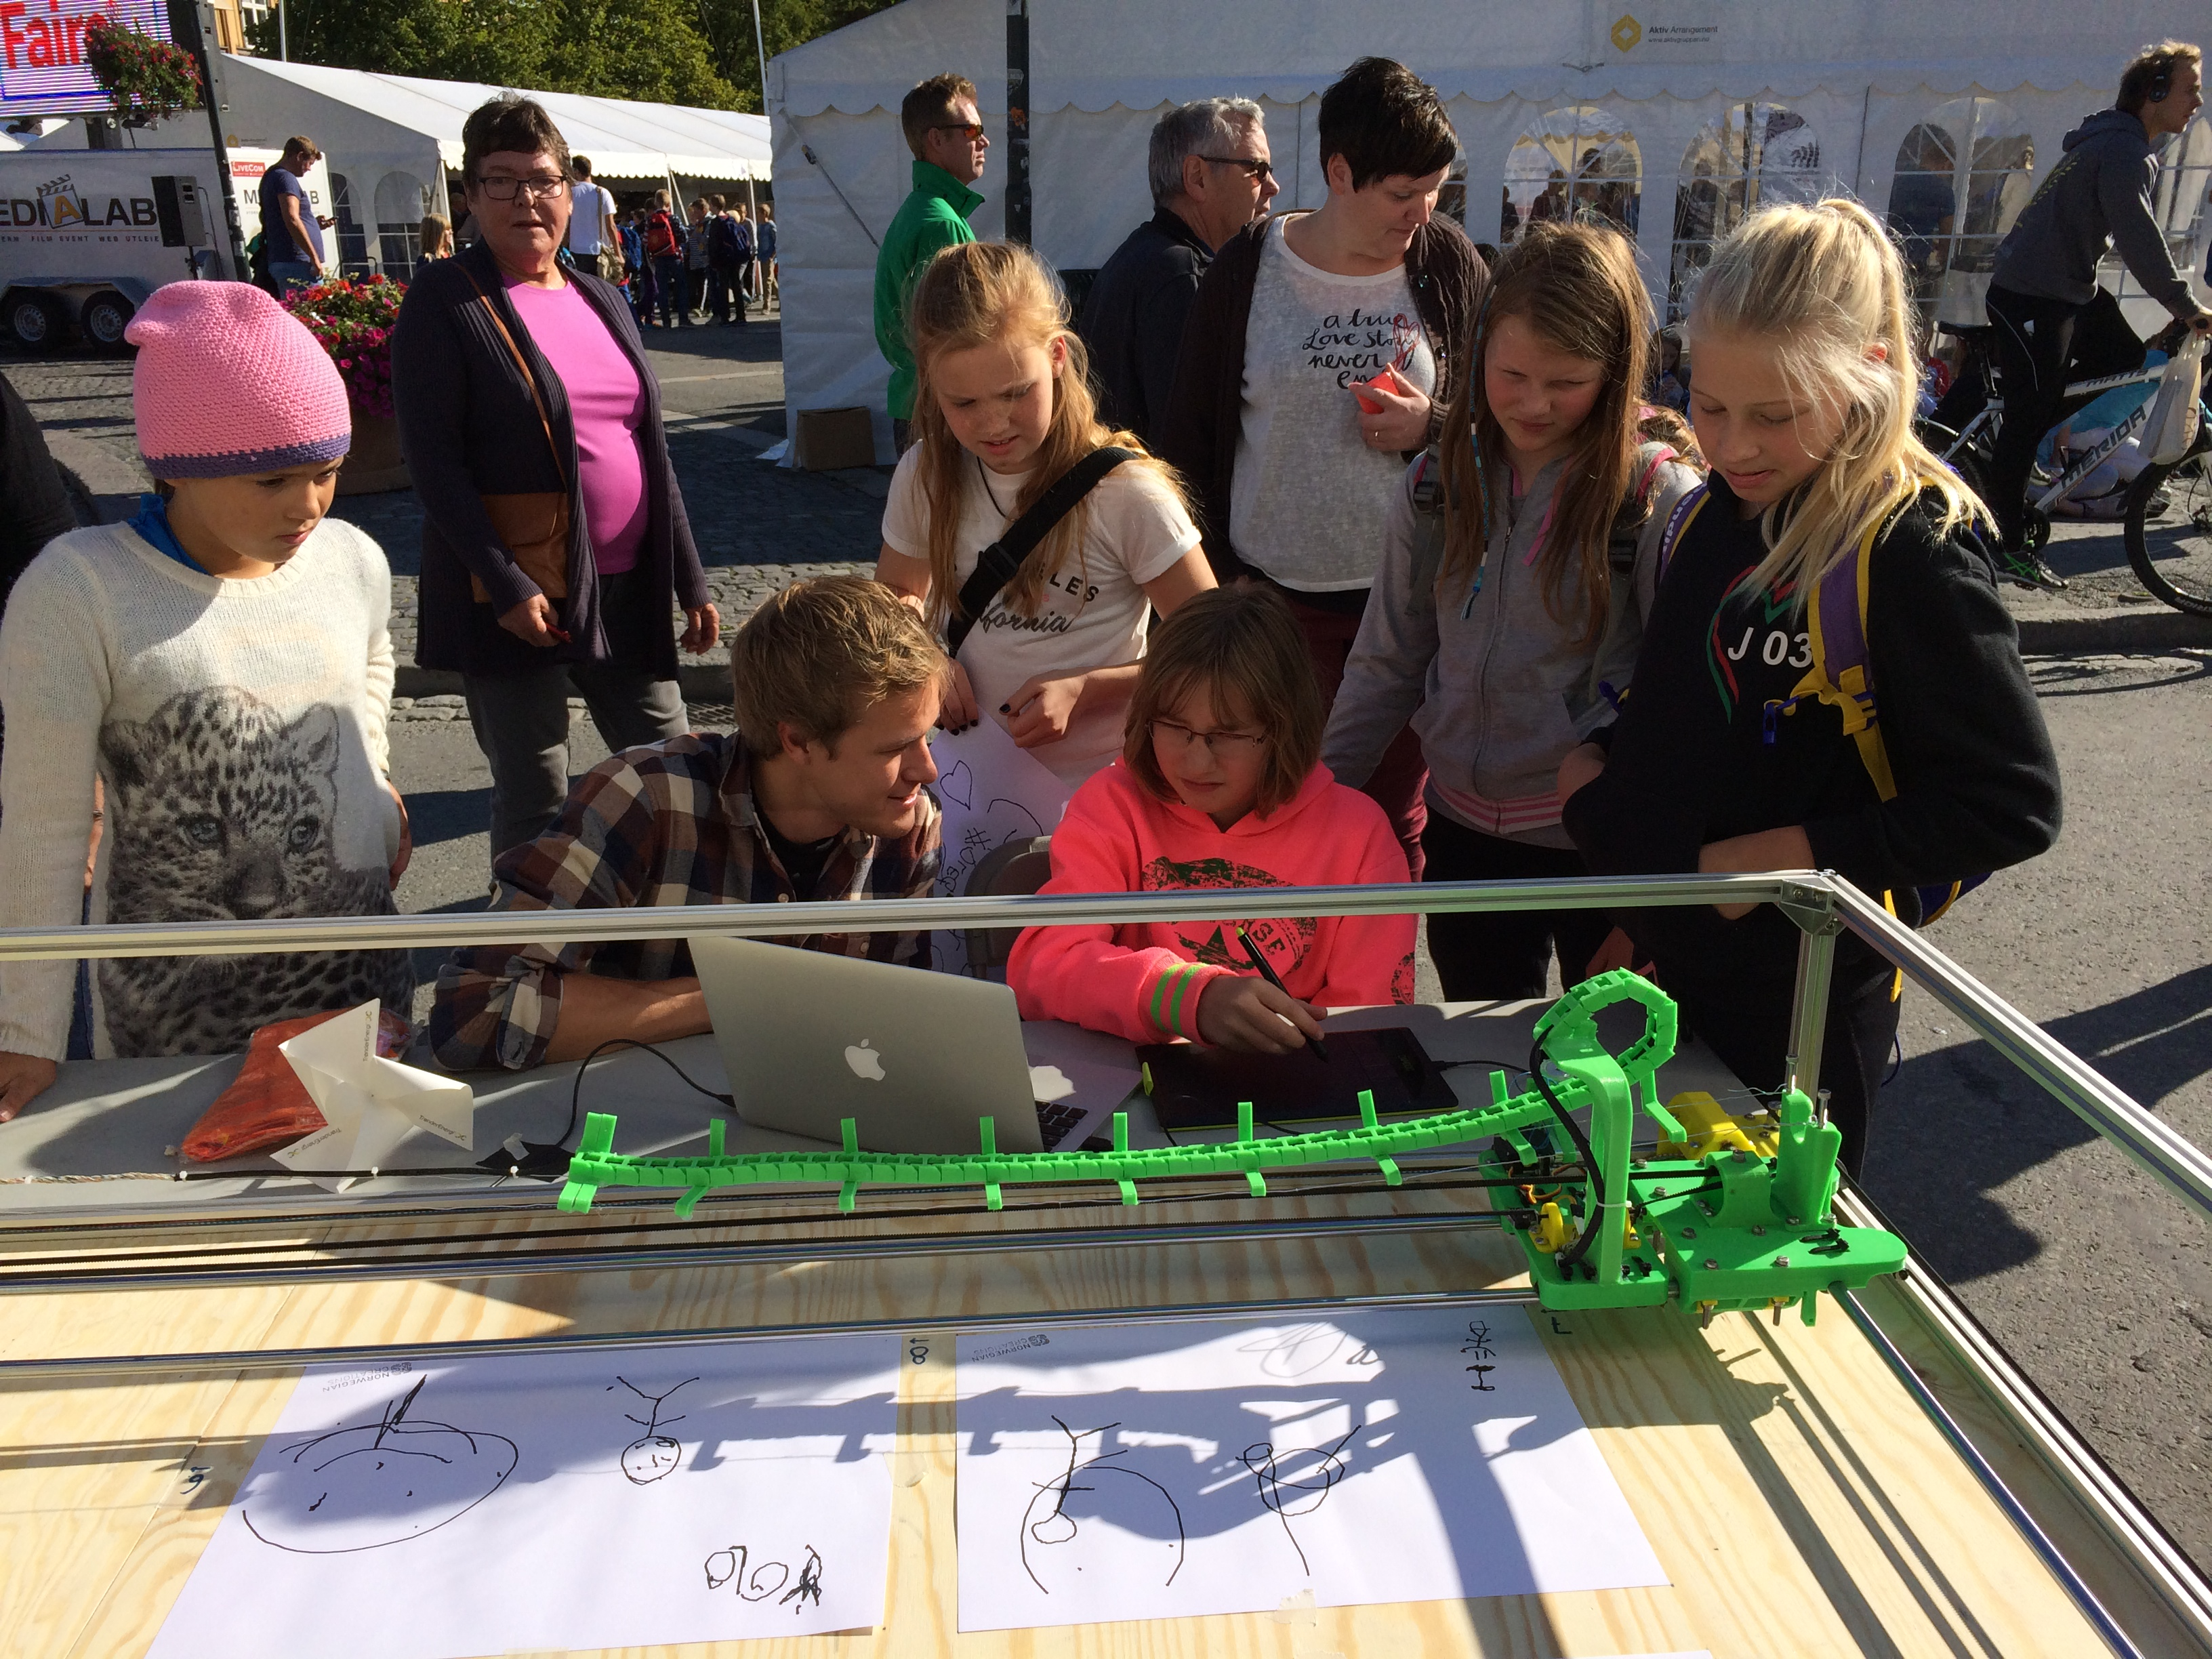 The Norwegian Creations' Drawing Machine at Maker Faire Trondheim